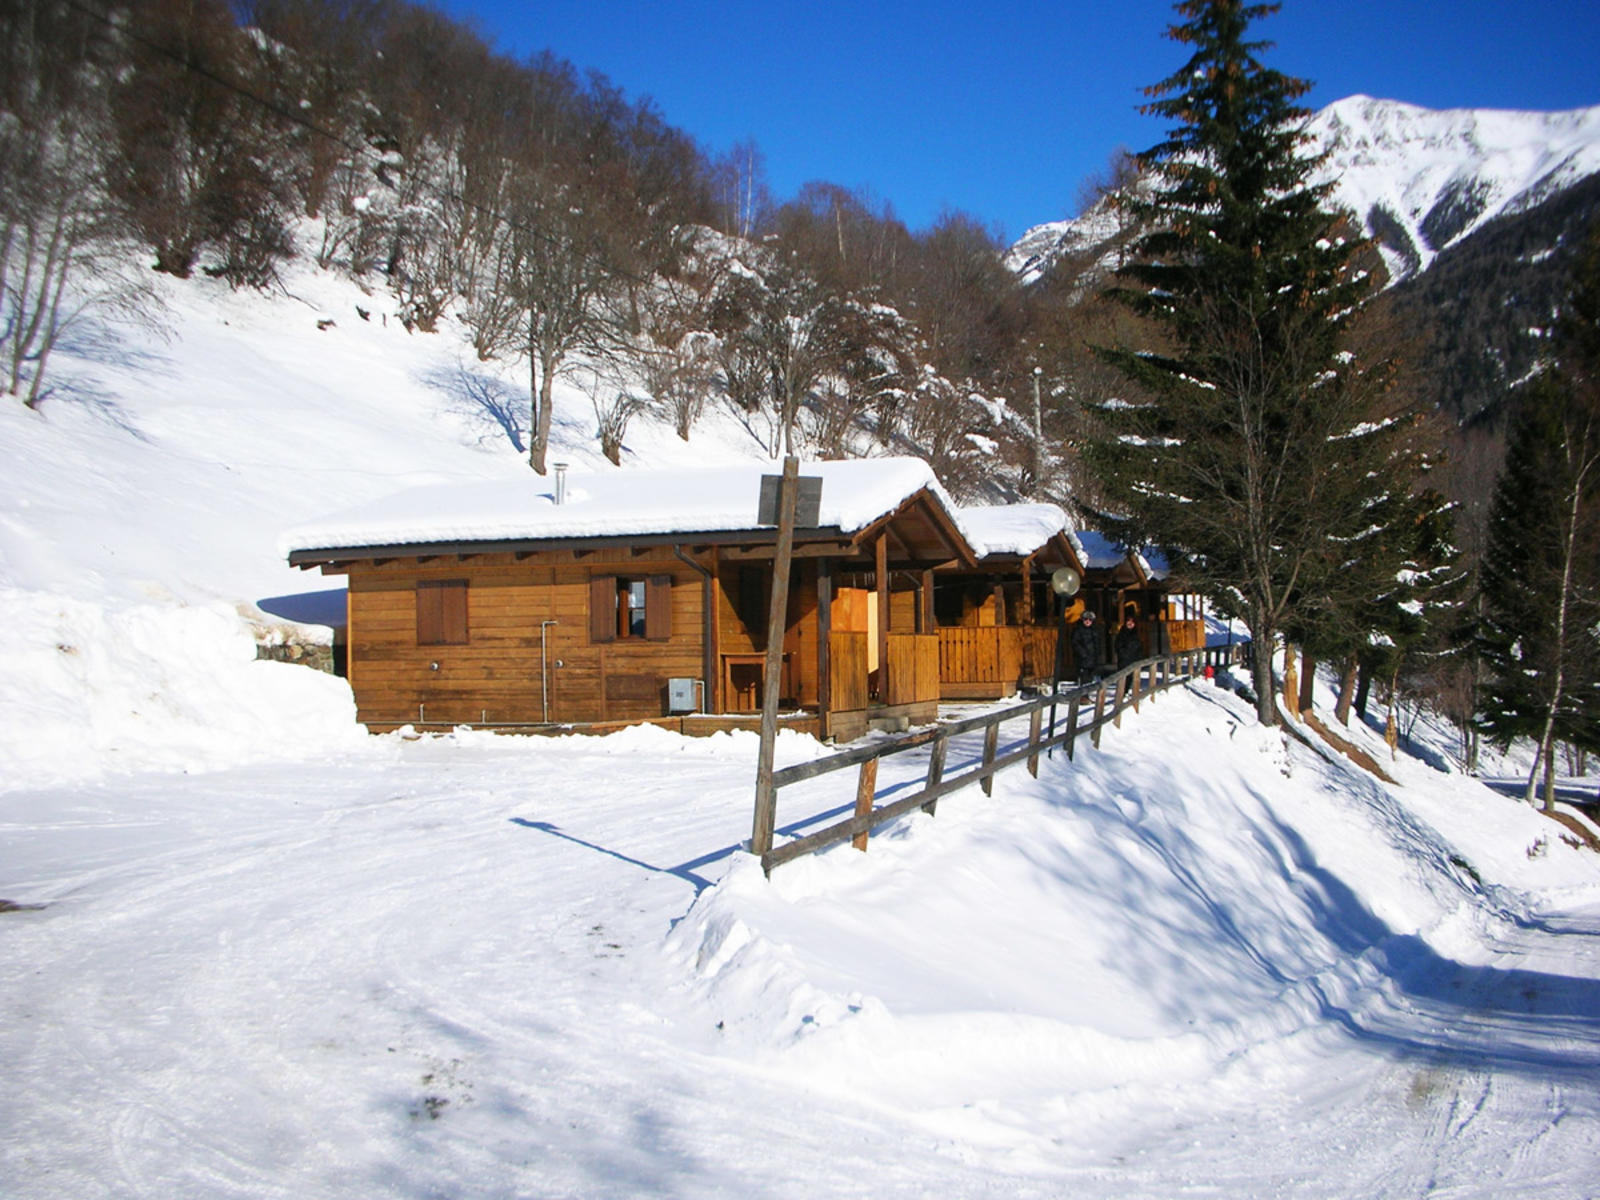 bungalow in inverno